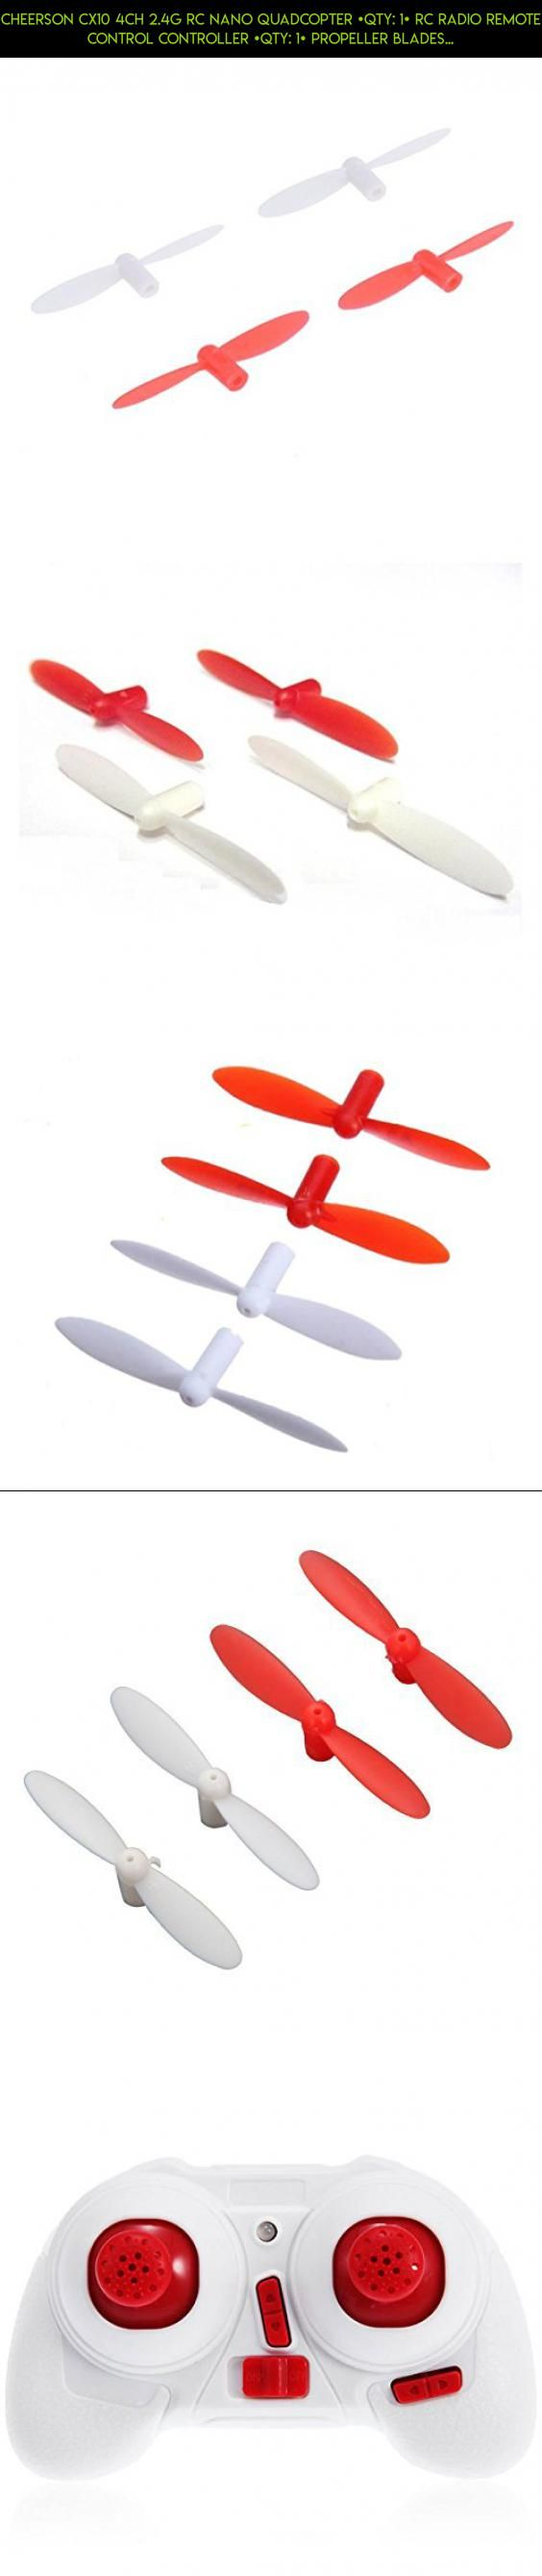 Cheerson CX10 4CH 2.4G RC Nano Quadcopter [QTY: 1] RC Radio Remote Control Controller [QTY: 1] Propeller Blades Yellow & White Propellers Props Prop Set [QTY: 1] Blade Red [QTY: 1] Green #products #camera #tech #shopping #plans #technology #cheerson #fpv #drone #gadgets #parts #kit #x1 #racing